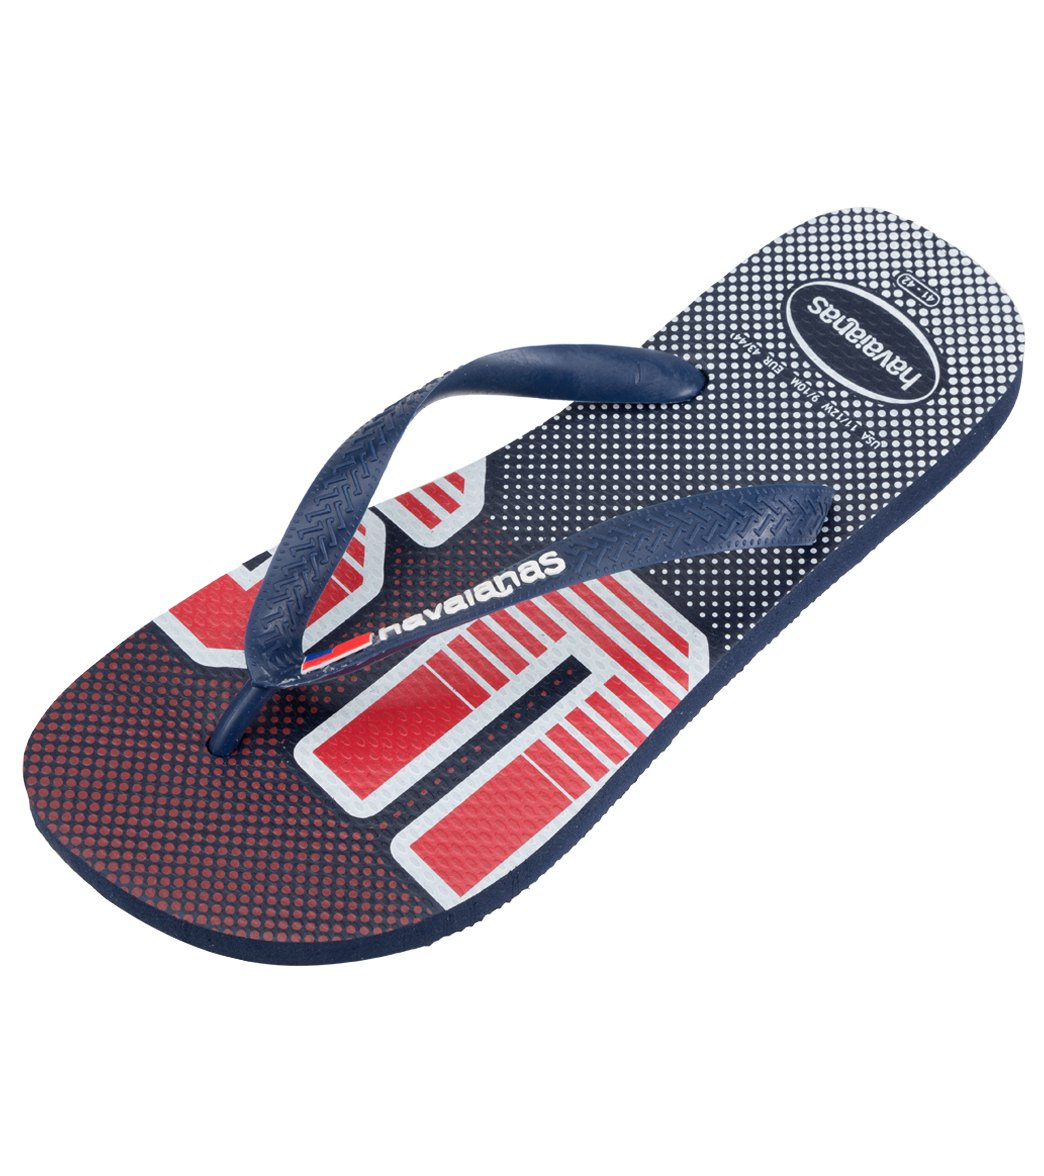 c3b3baf70 Havaianas Men s Top USA Flip-Flop at SwimOutlet.com